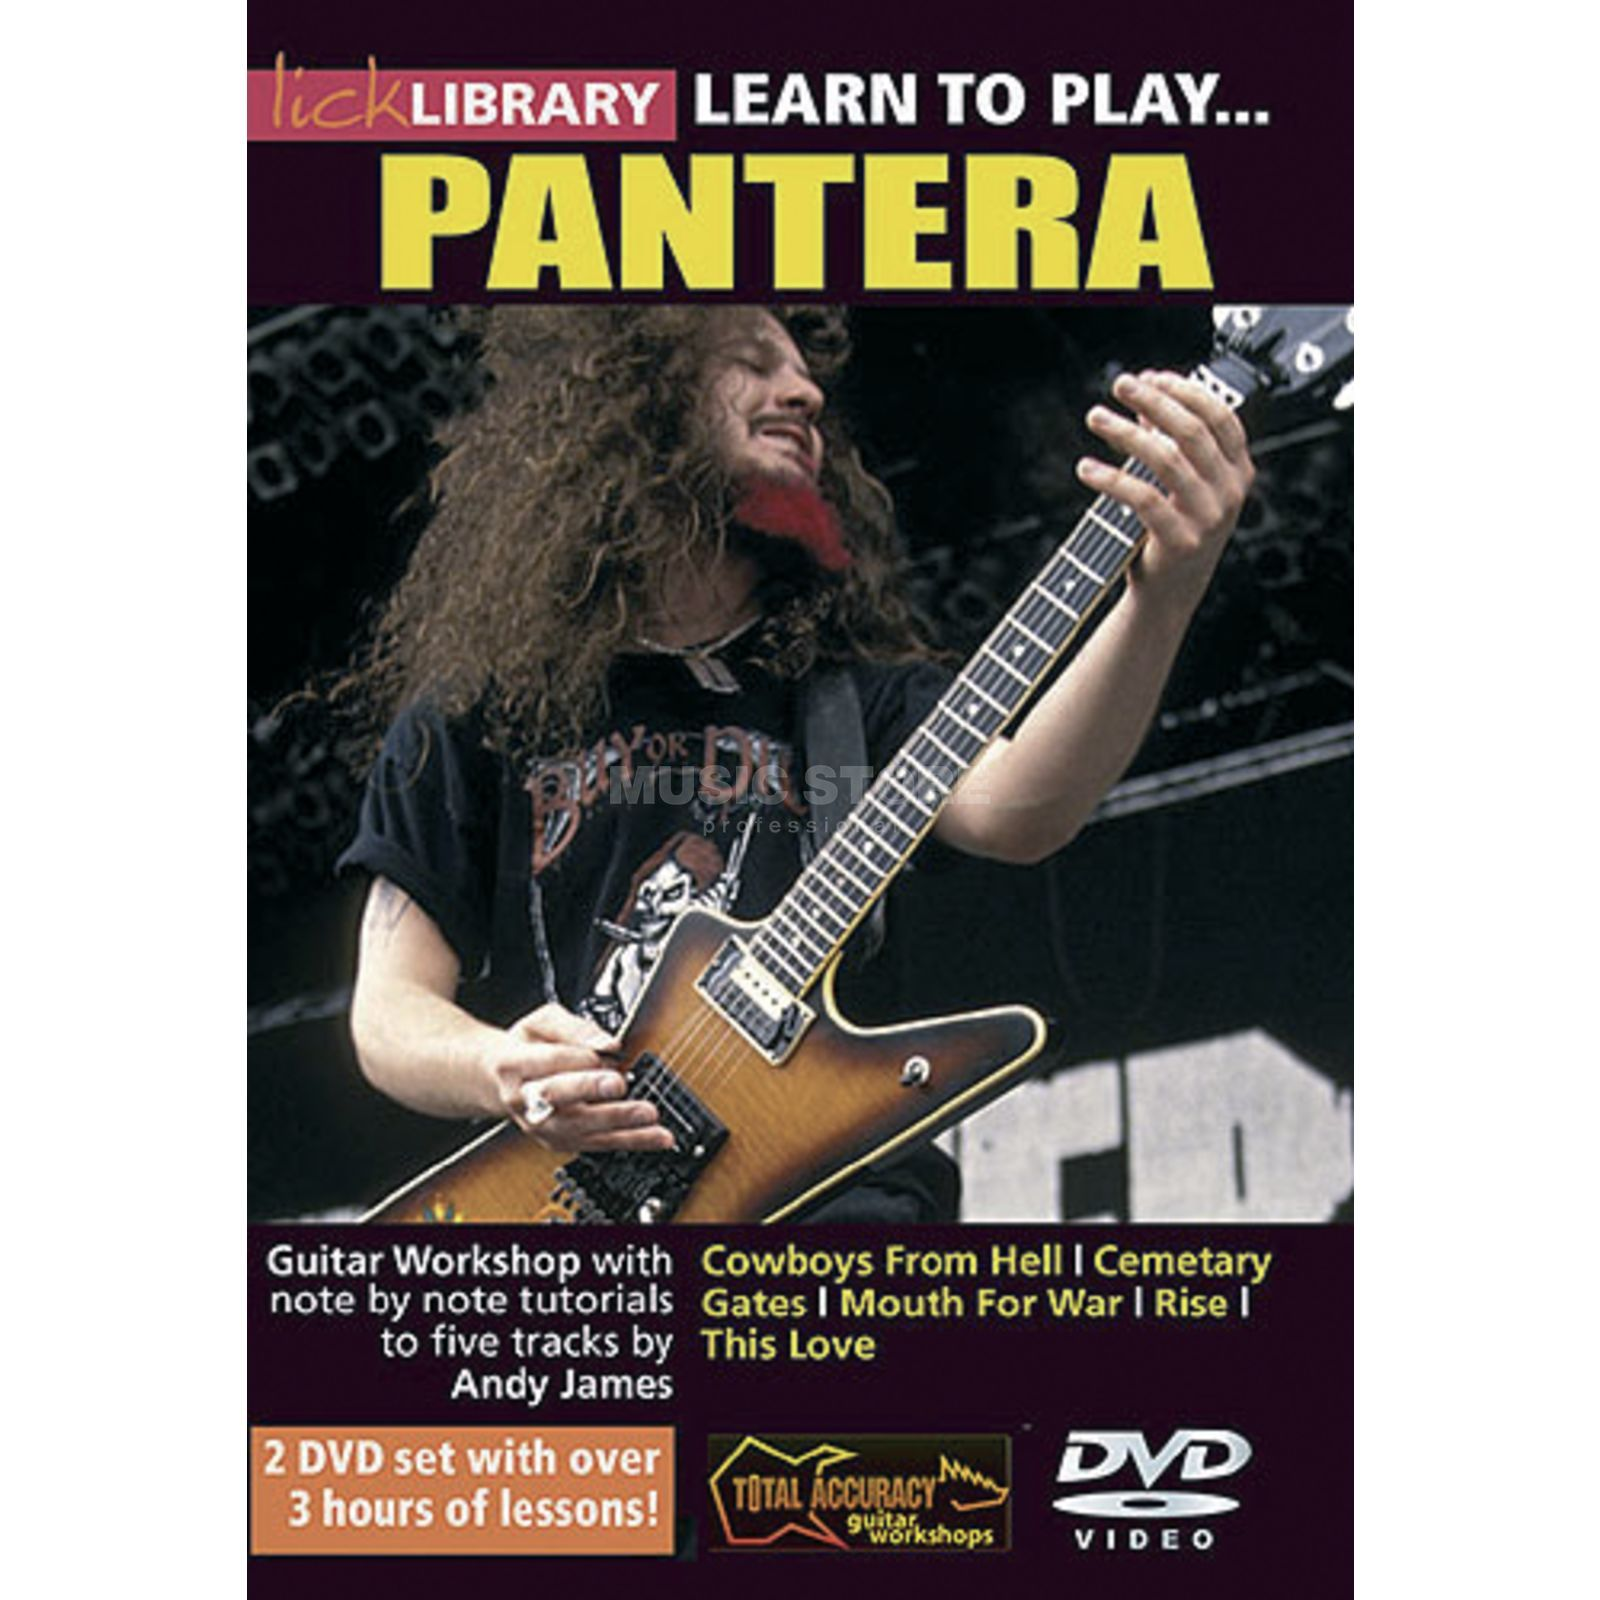 Roadrock International Lick Library: Learn To Play Pantera DVD Produktbillede